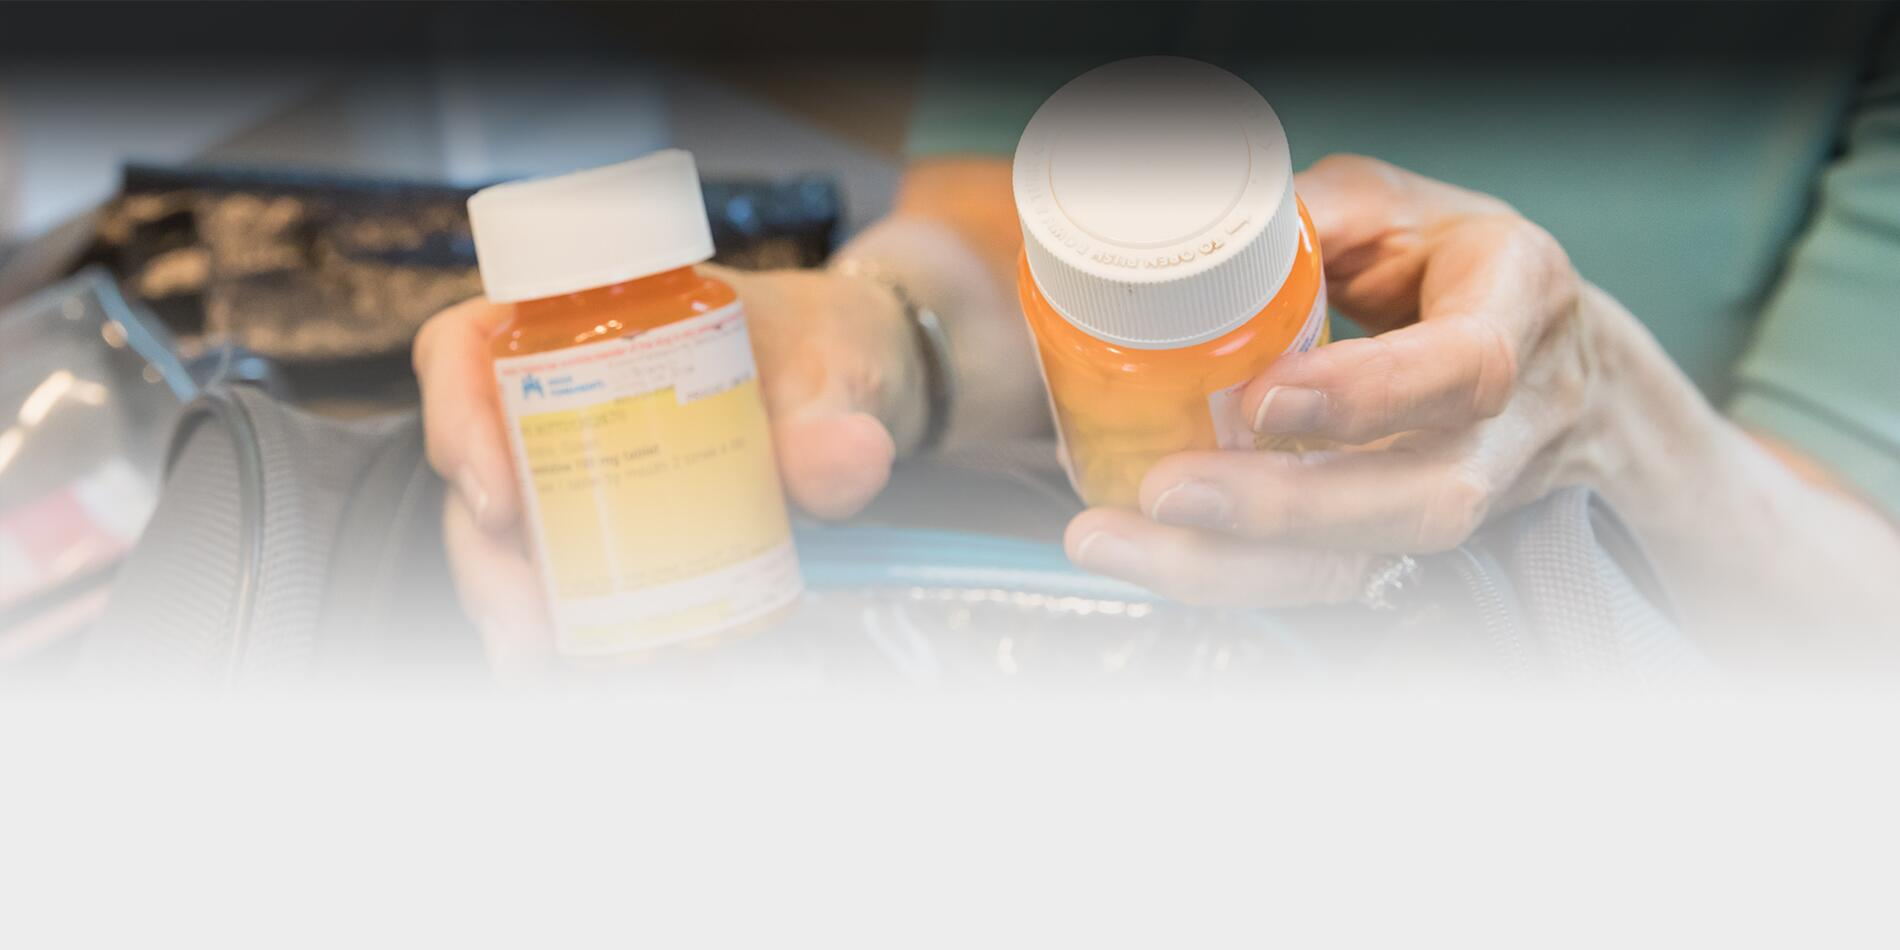 a close up picture of two hands holding bottles of perscription medications.